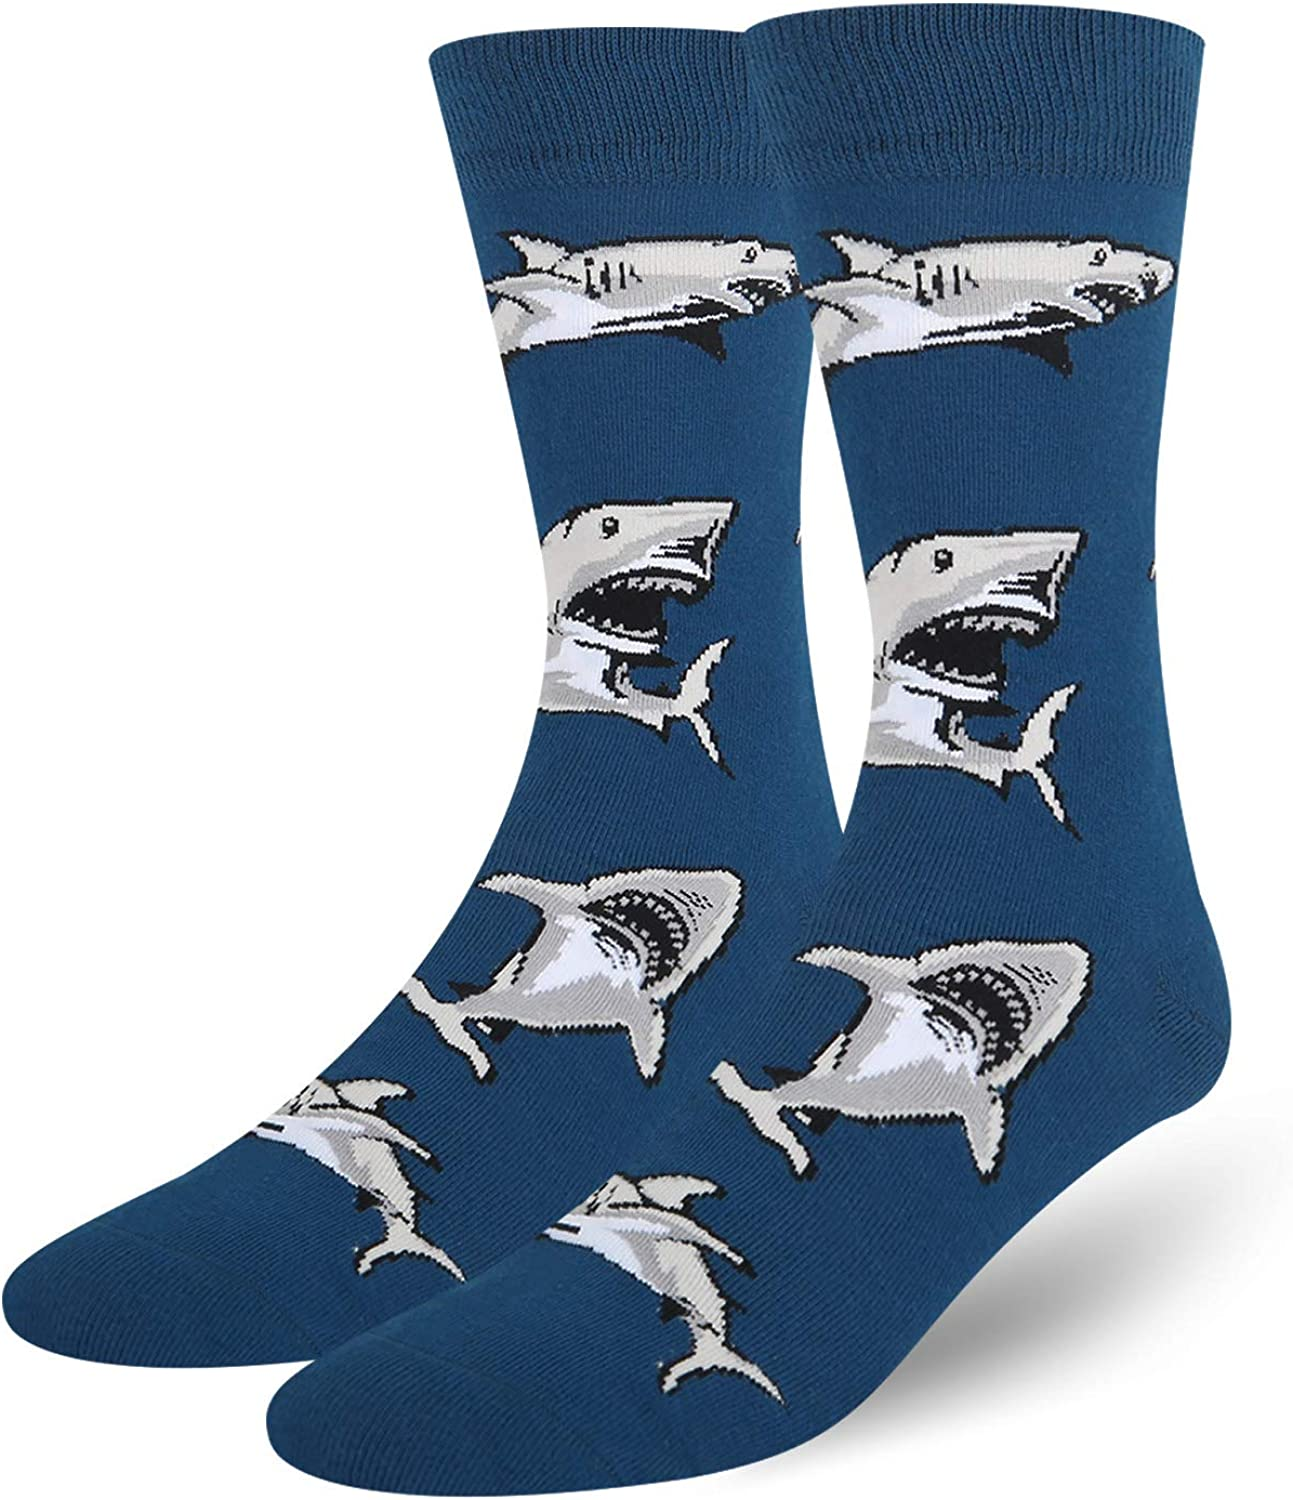 HAPPYPOP Men's Shark Whale Narwhal Socks Funny Crazy Novelty Crew Animal Pattern Socks